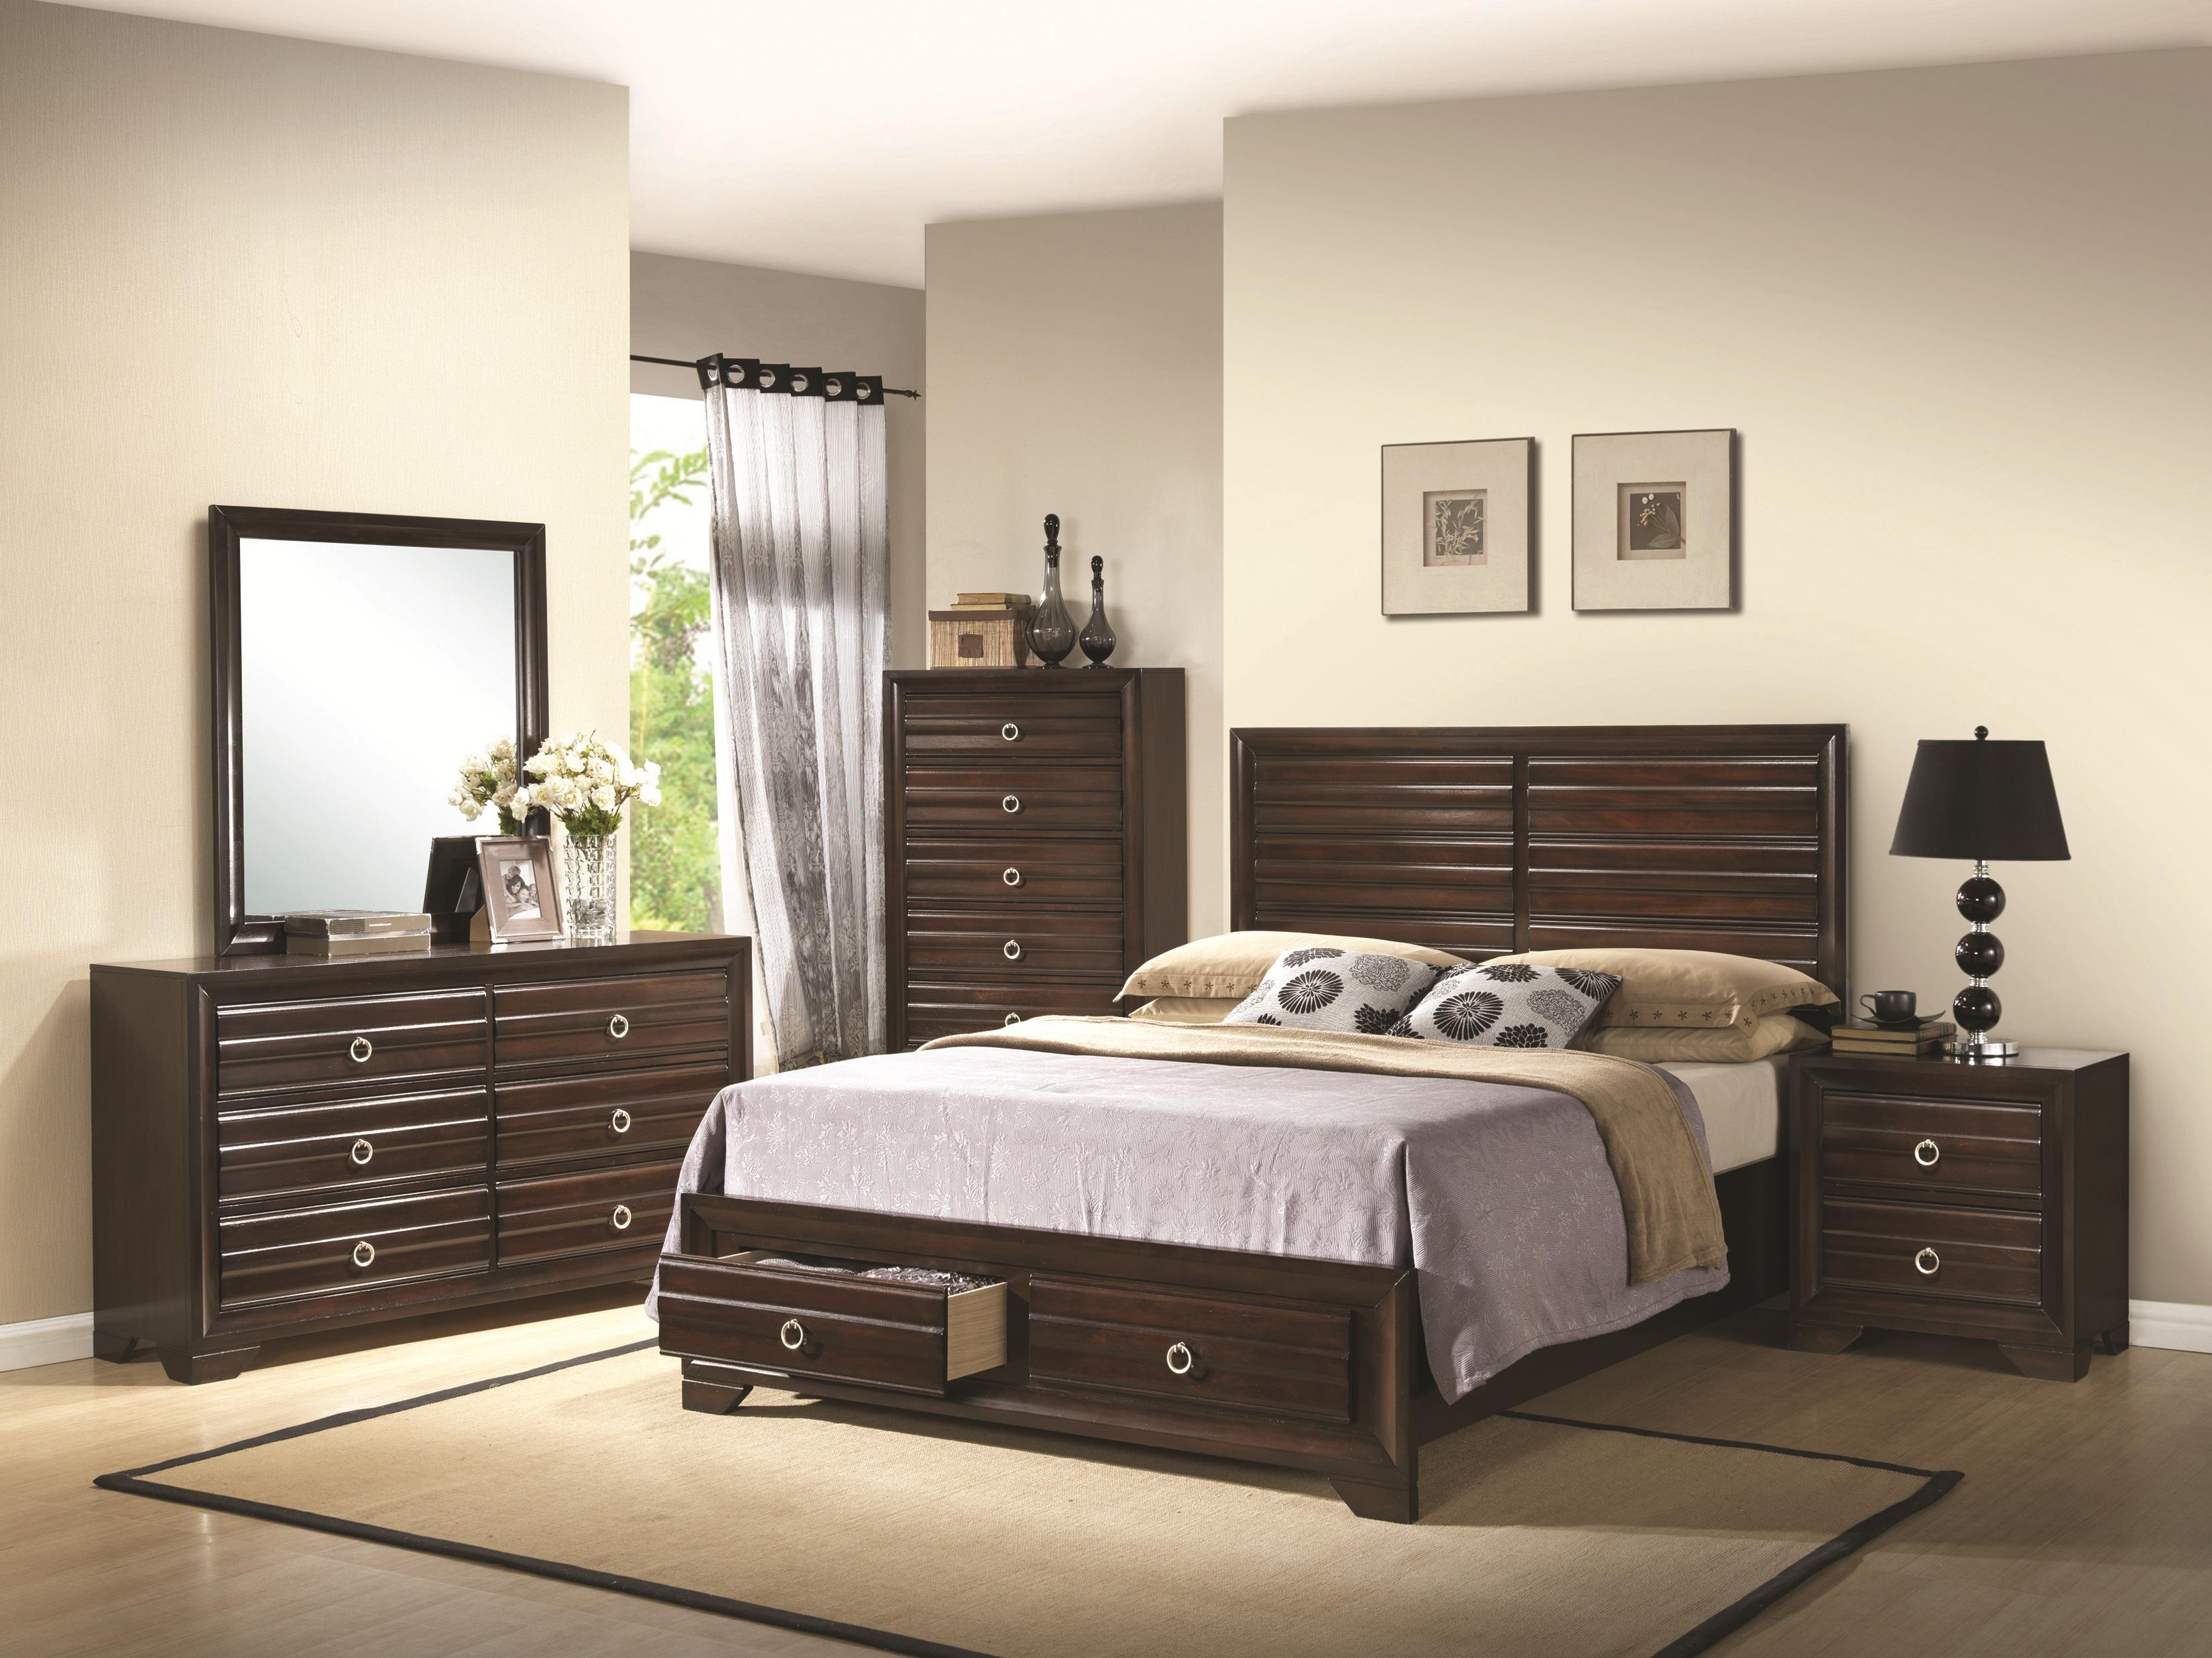 Cal king 4 pc set, bryce ( bed, dresser, nightstand, mirror)